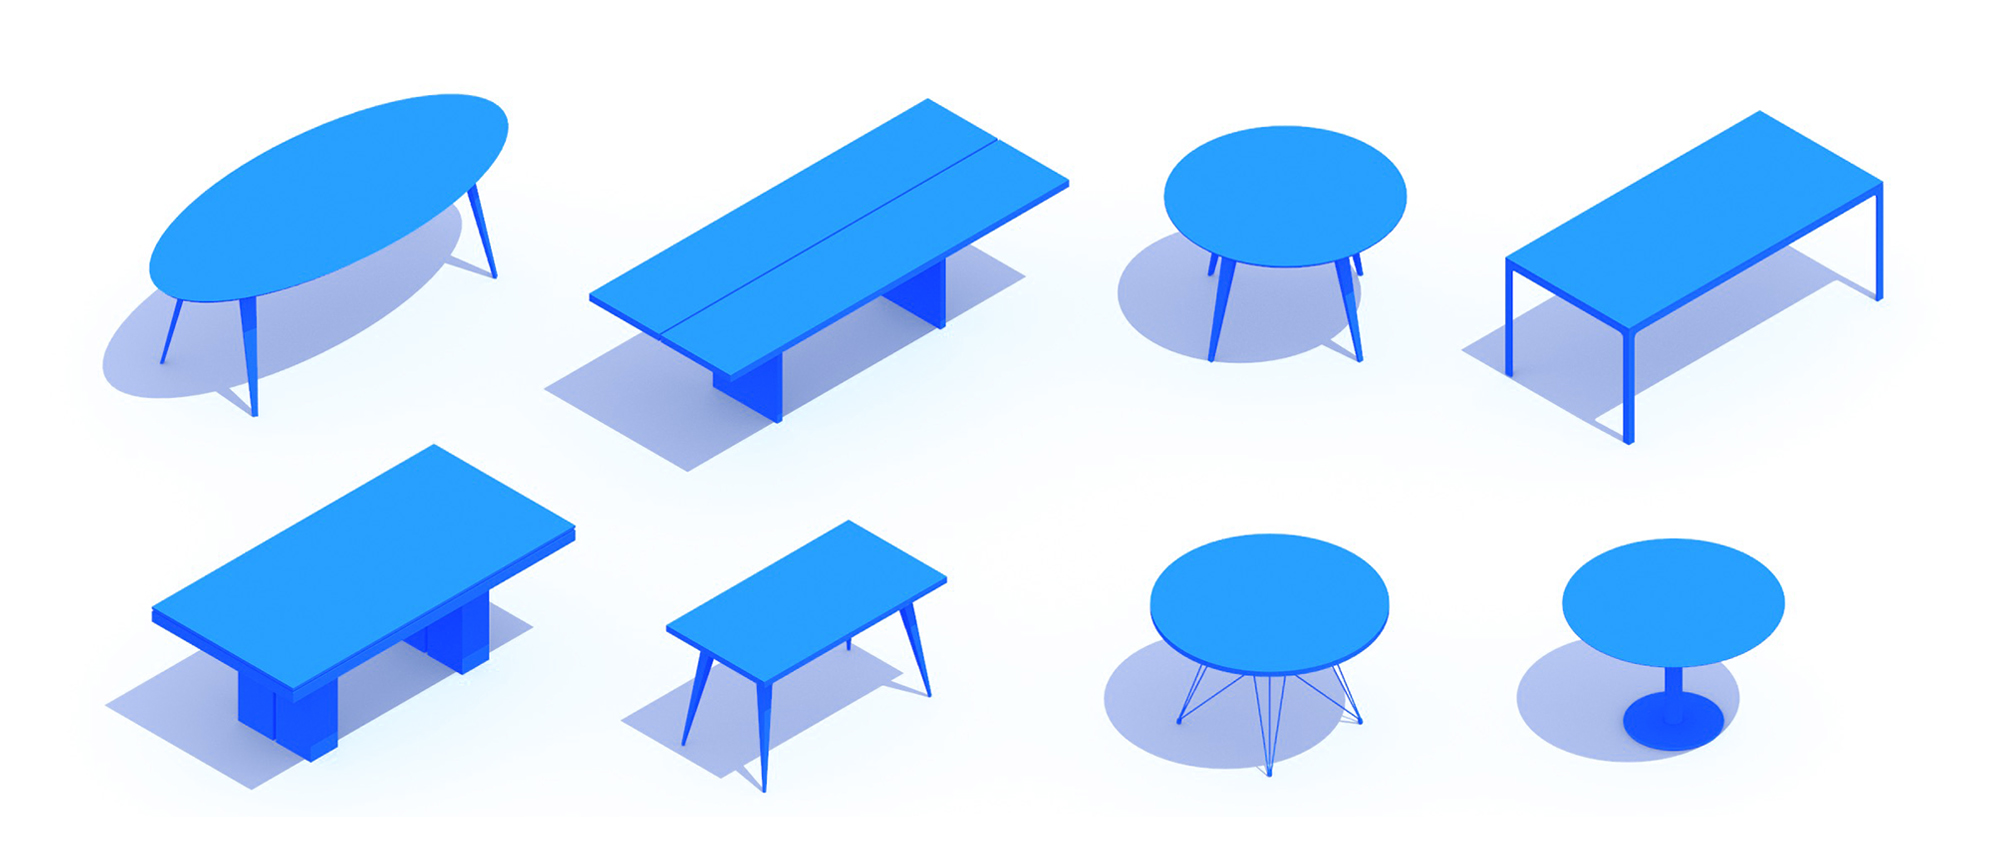 3D perspective of a collection of Dining Tables showing many different sizes, styles, and designs